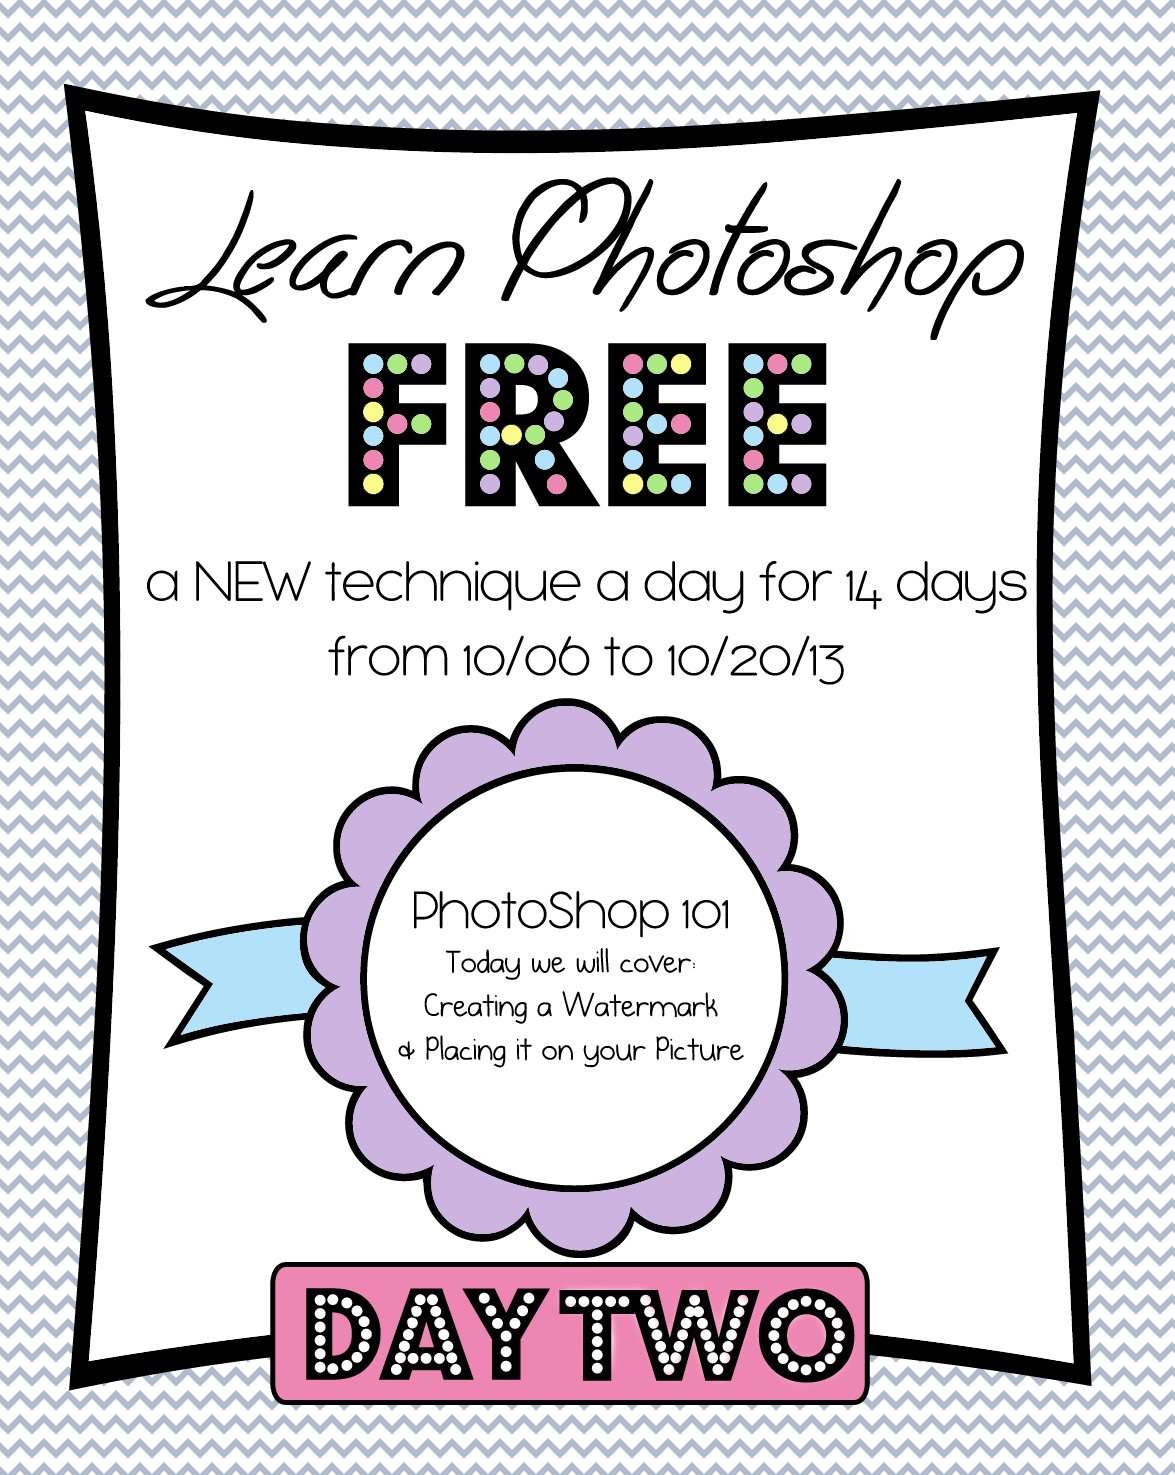 Photoshop Class Day 2 – Watermarks, how to create and place on your image